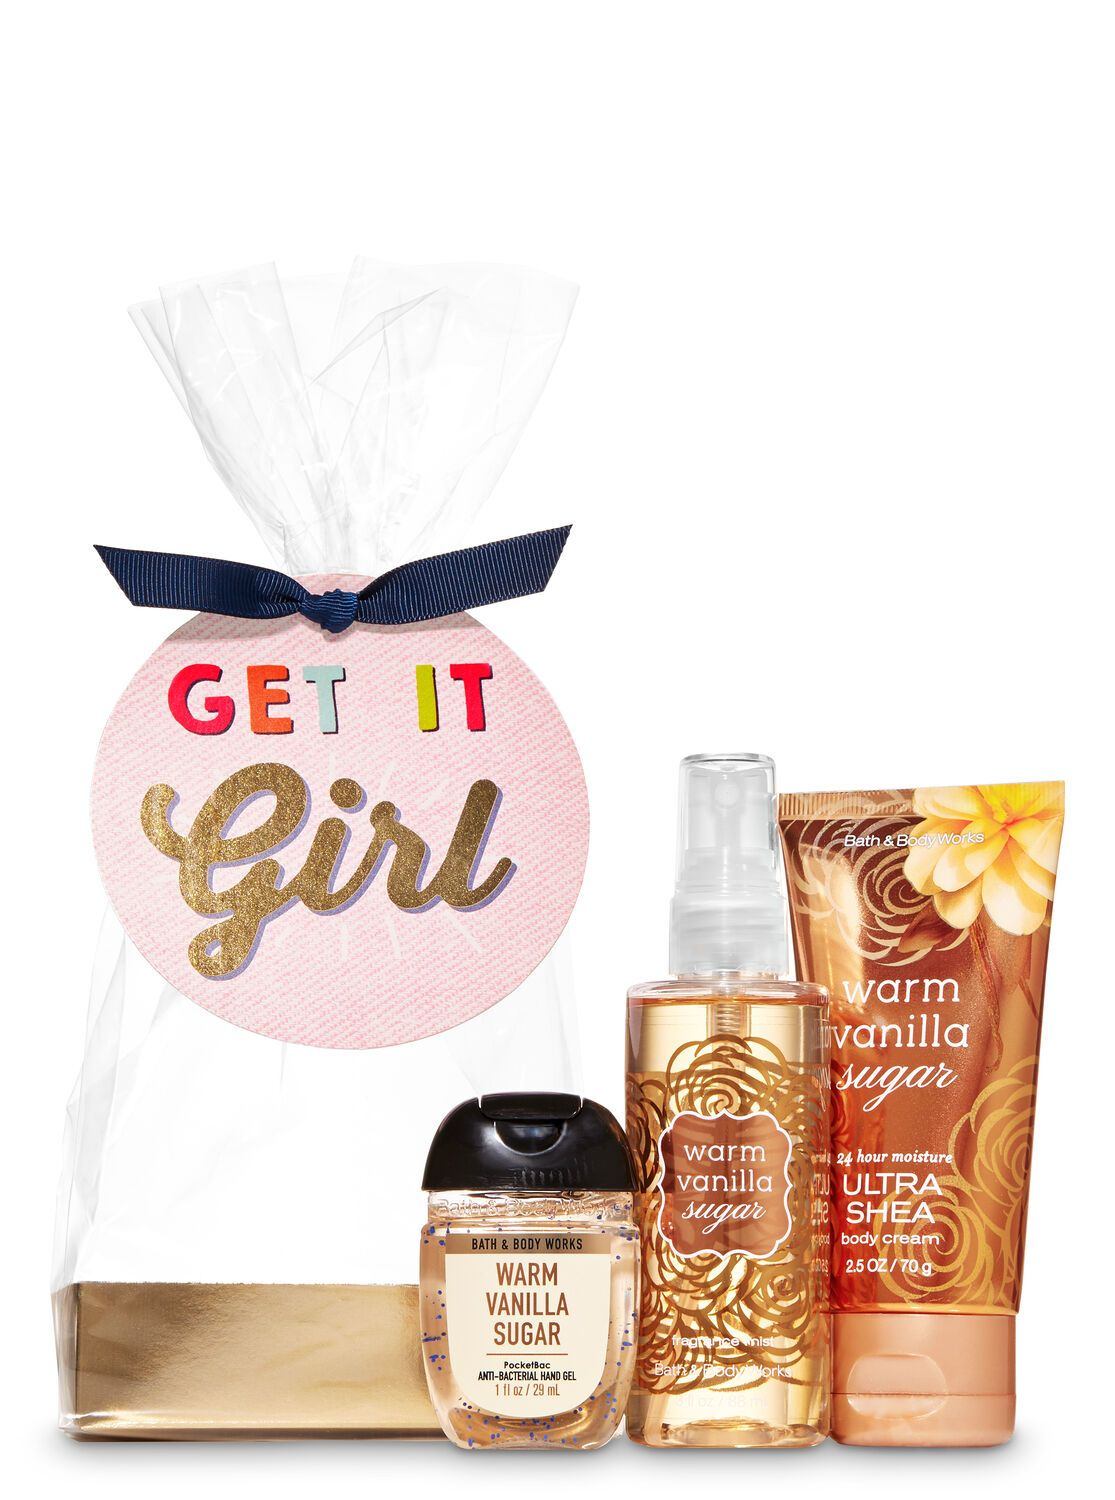 Warm Vanilla Sugar Get It Girl Mini Gift Set With Images Gift